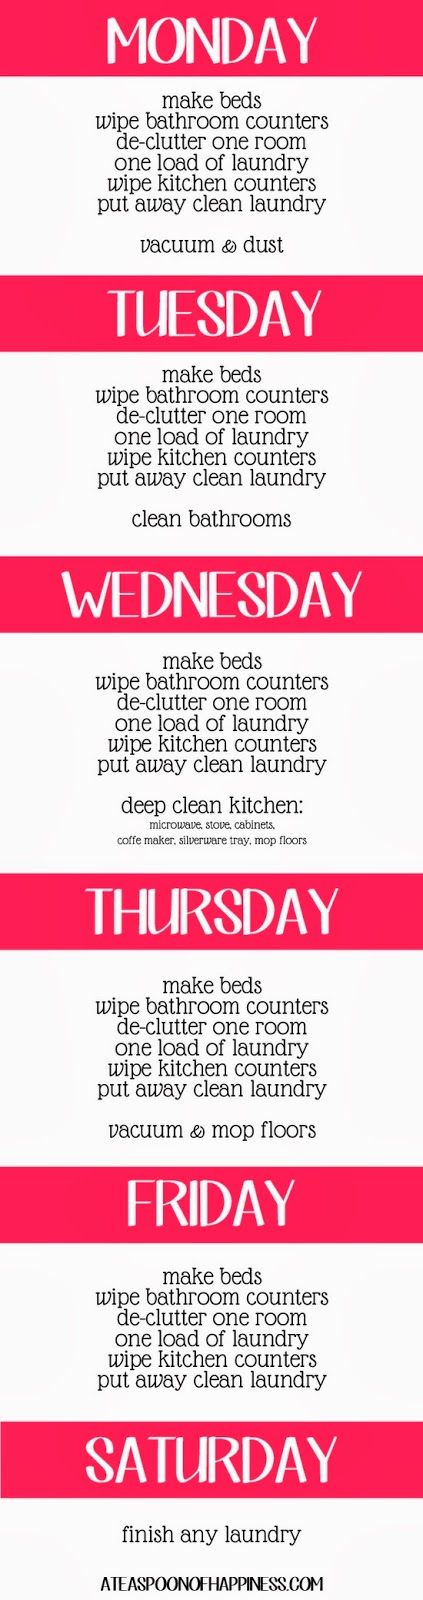 {re}cycled consign and design: Shark Steam & Mop // Cleaning Schedule